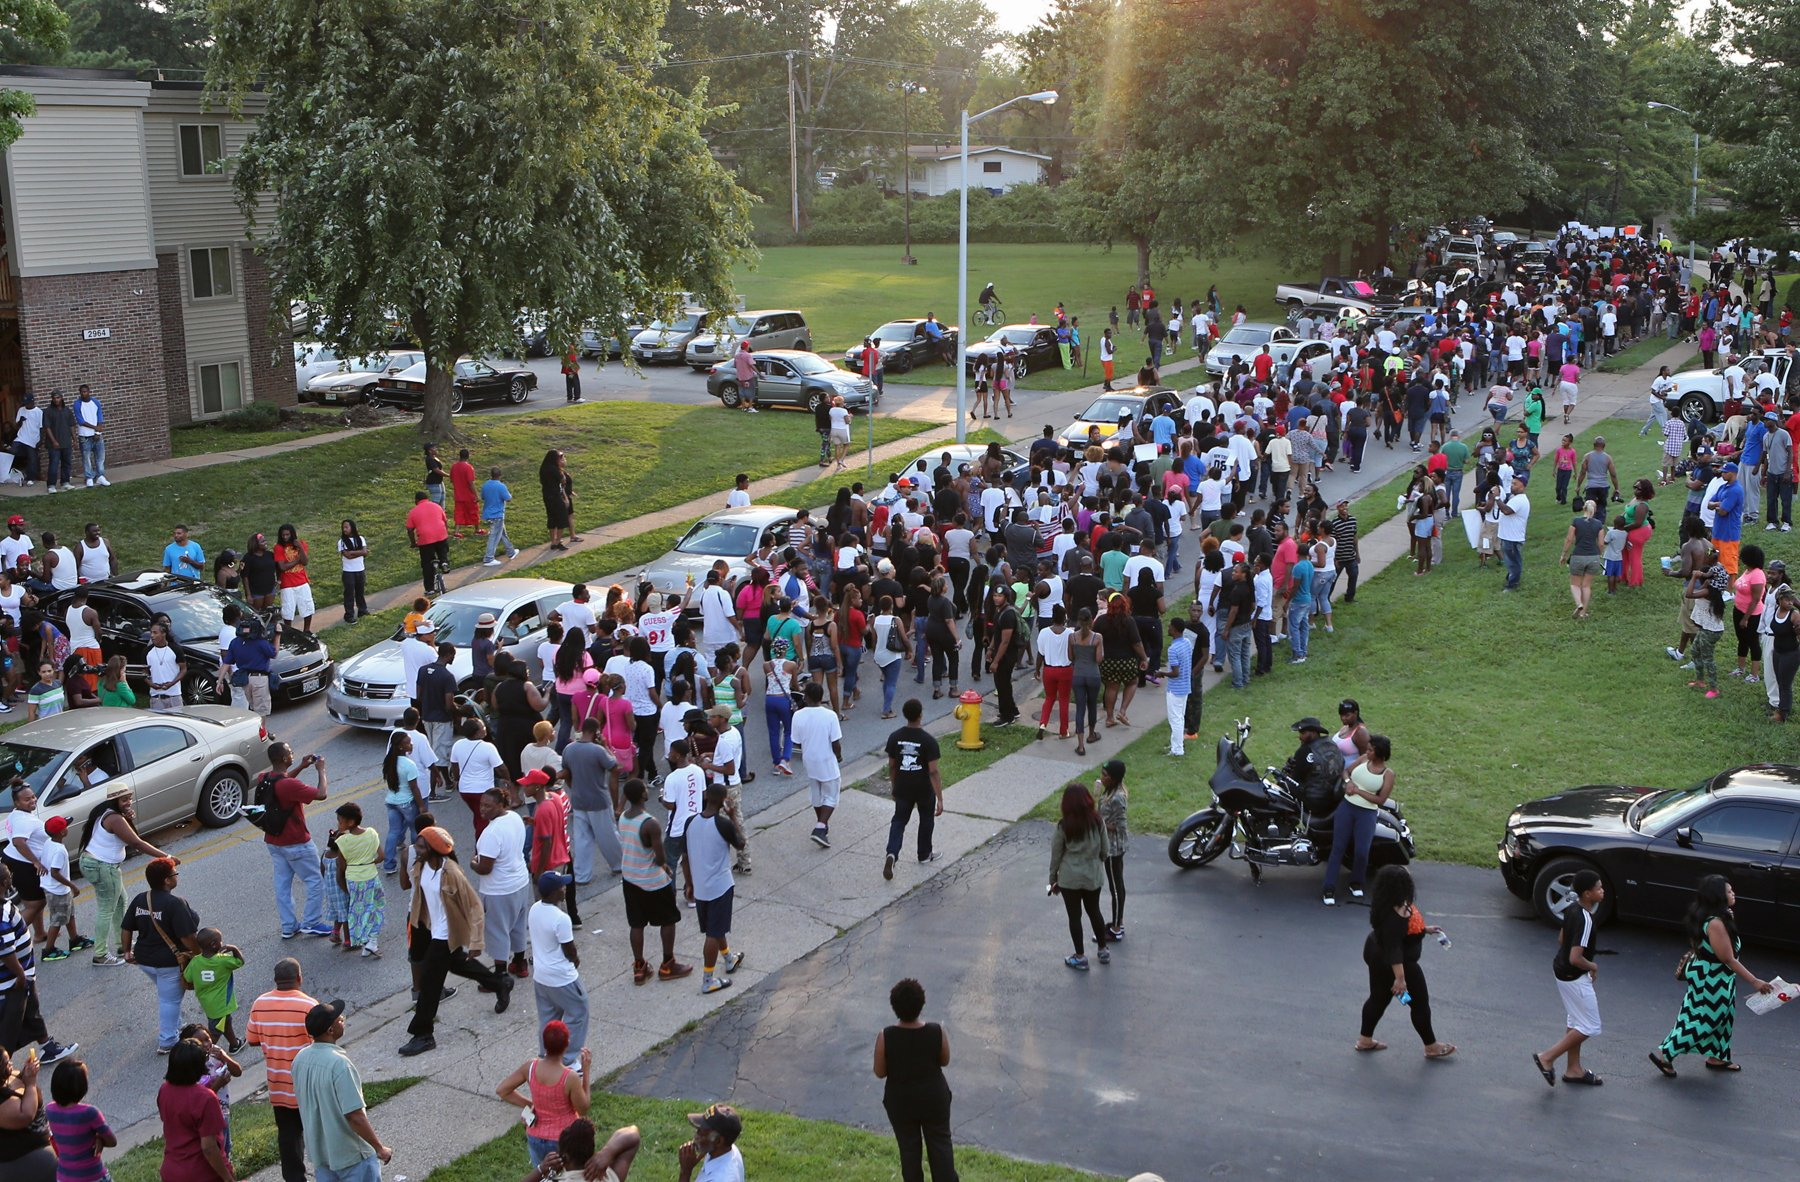 A large crowd of protesters marches out of the apartment complex on Sunday evening, Aug. 10, 2014, in Ferguson, towards W. Florissant, as they protest the shooting of Michael Brown.Photo by J.B. Forbes.